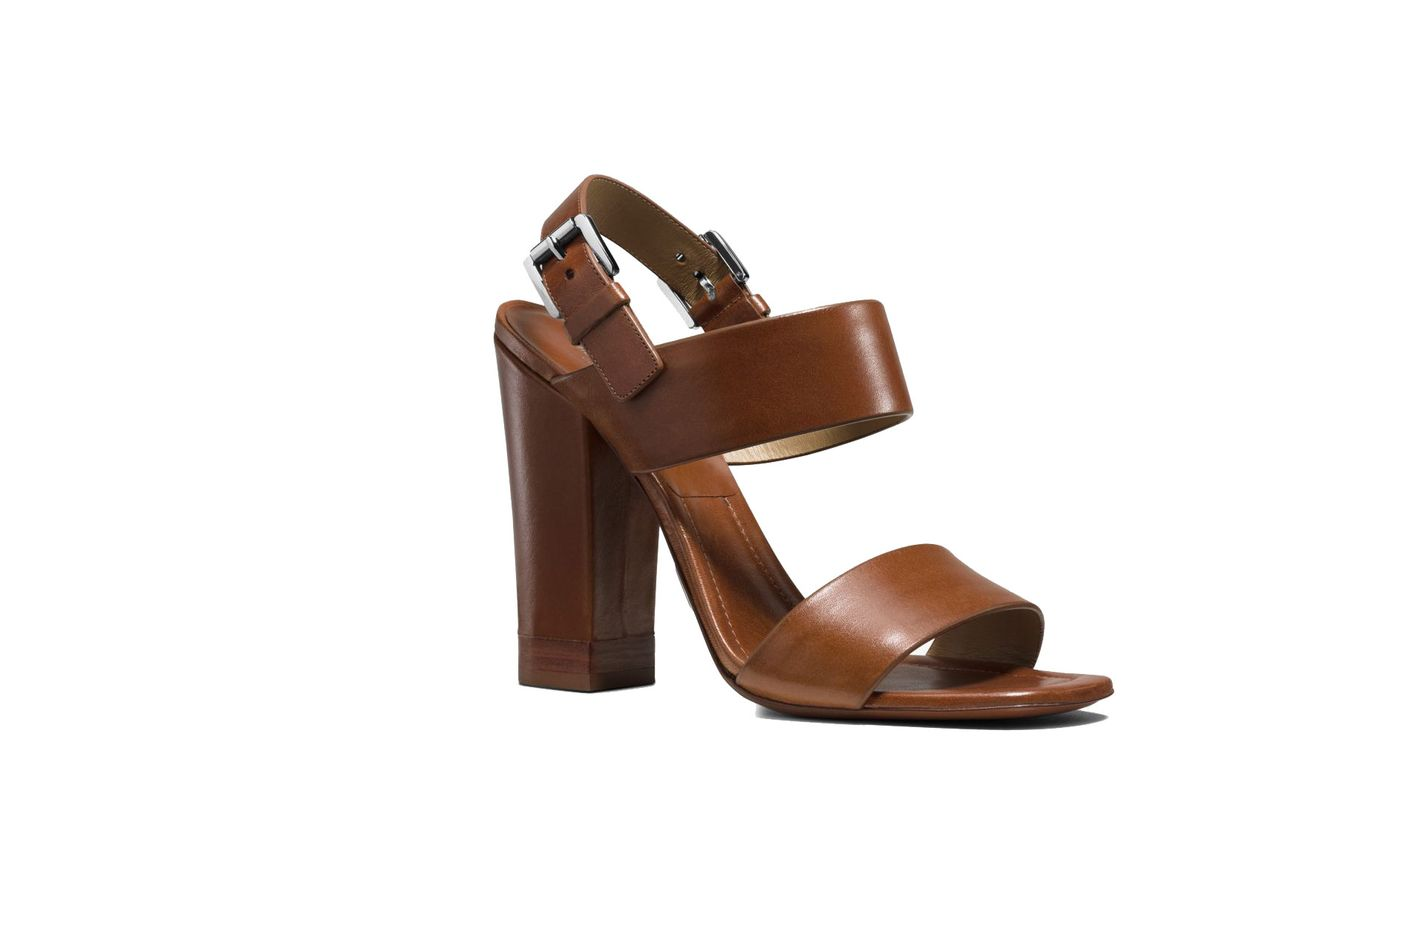 Michael Kors Collection Thelma Leather Sandal